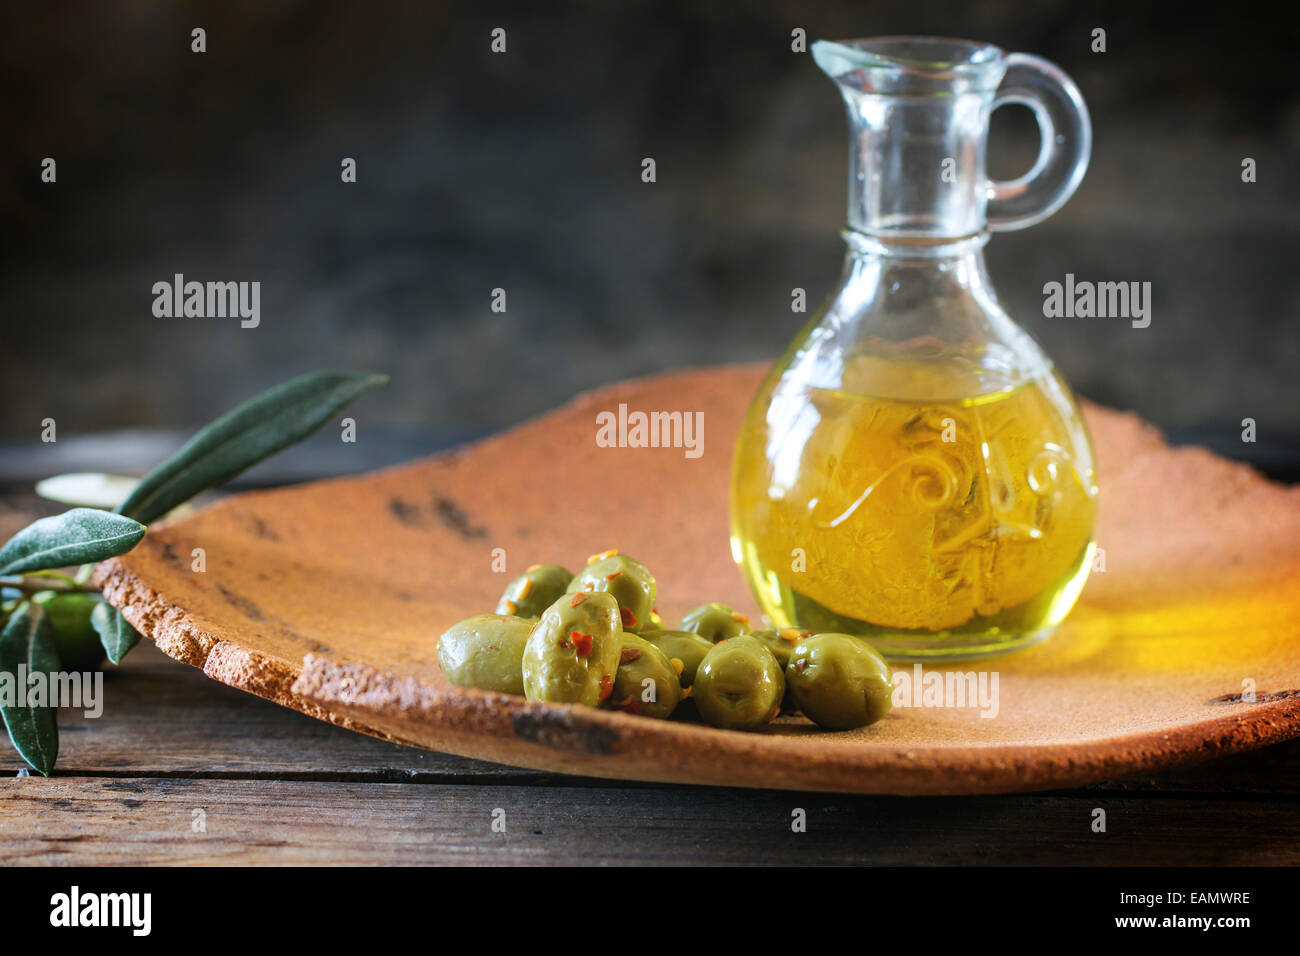 Green olives and bottle of olive oil served in handmade clay plate over wooden table. - Stock Image